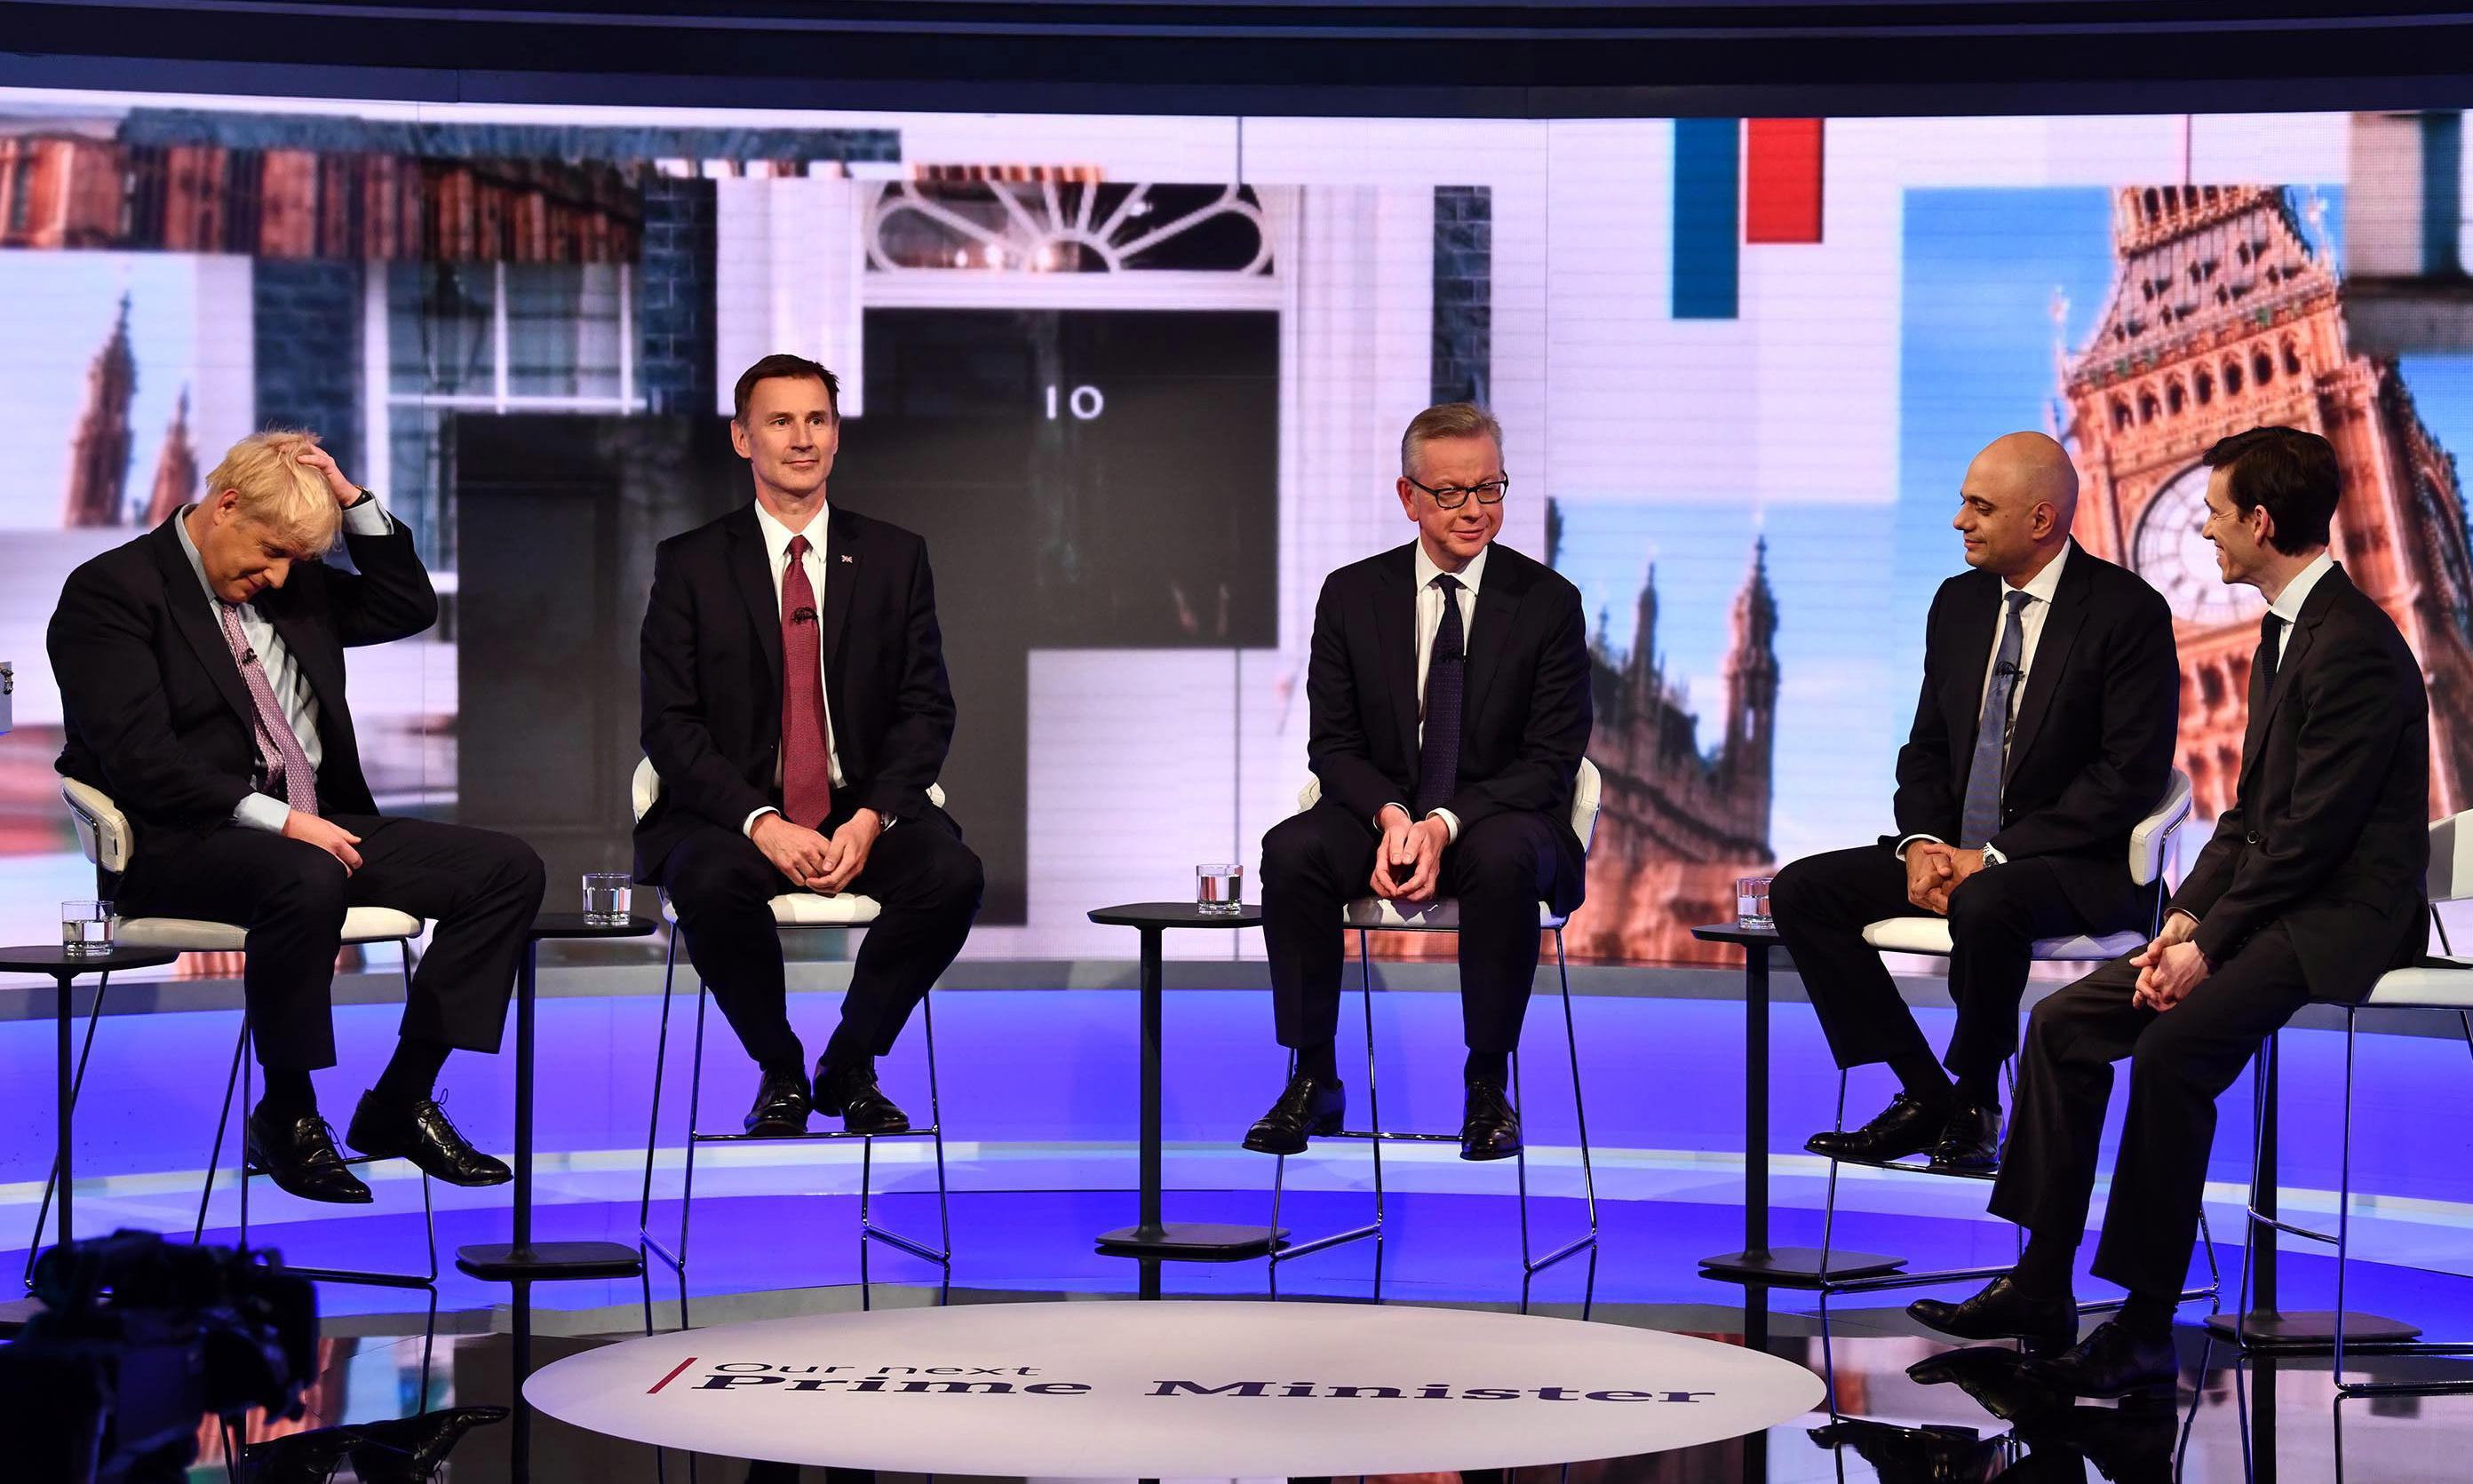 Ageing boy band's reunion manages to hit all the wrong notes